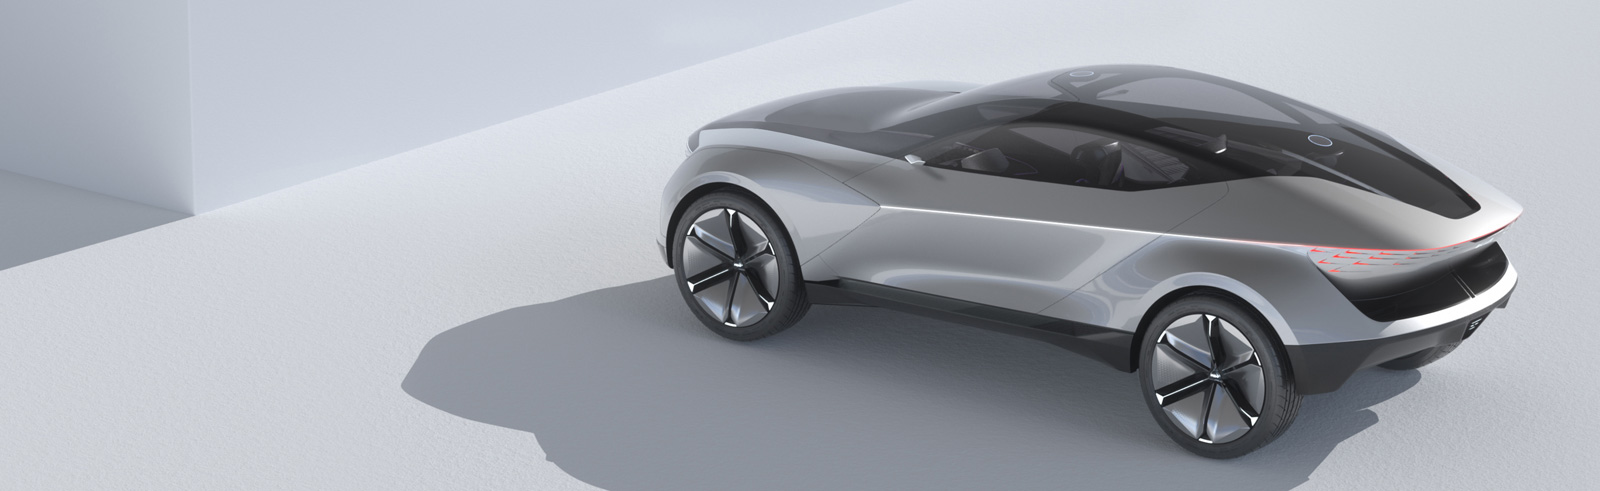 The Kia Futuron Concept is the design preview of an electric SUV coupe